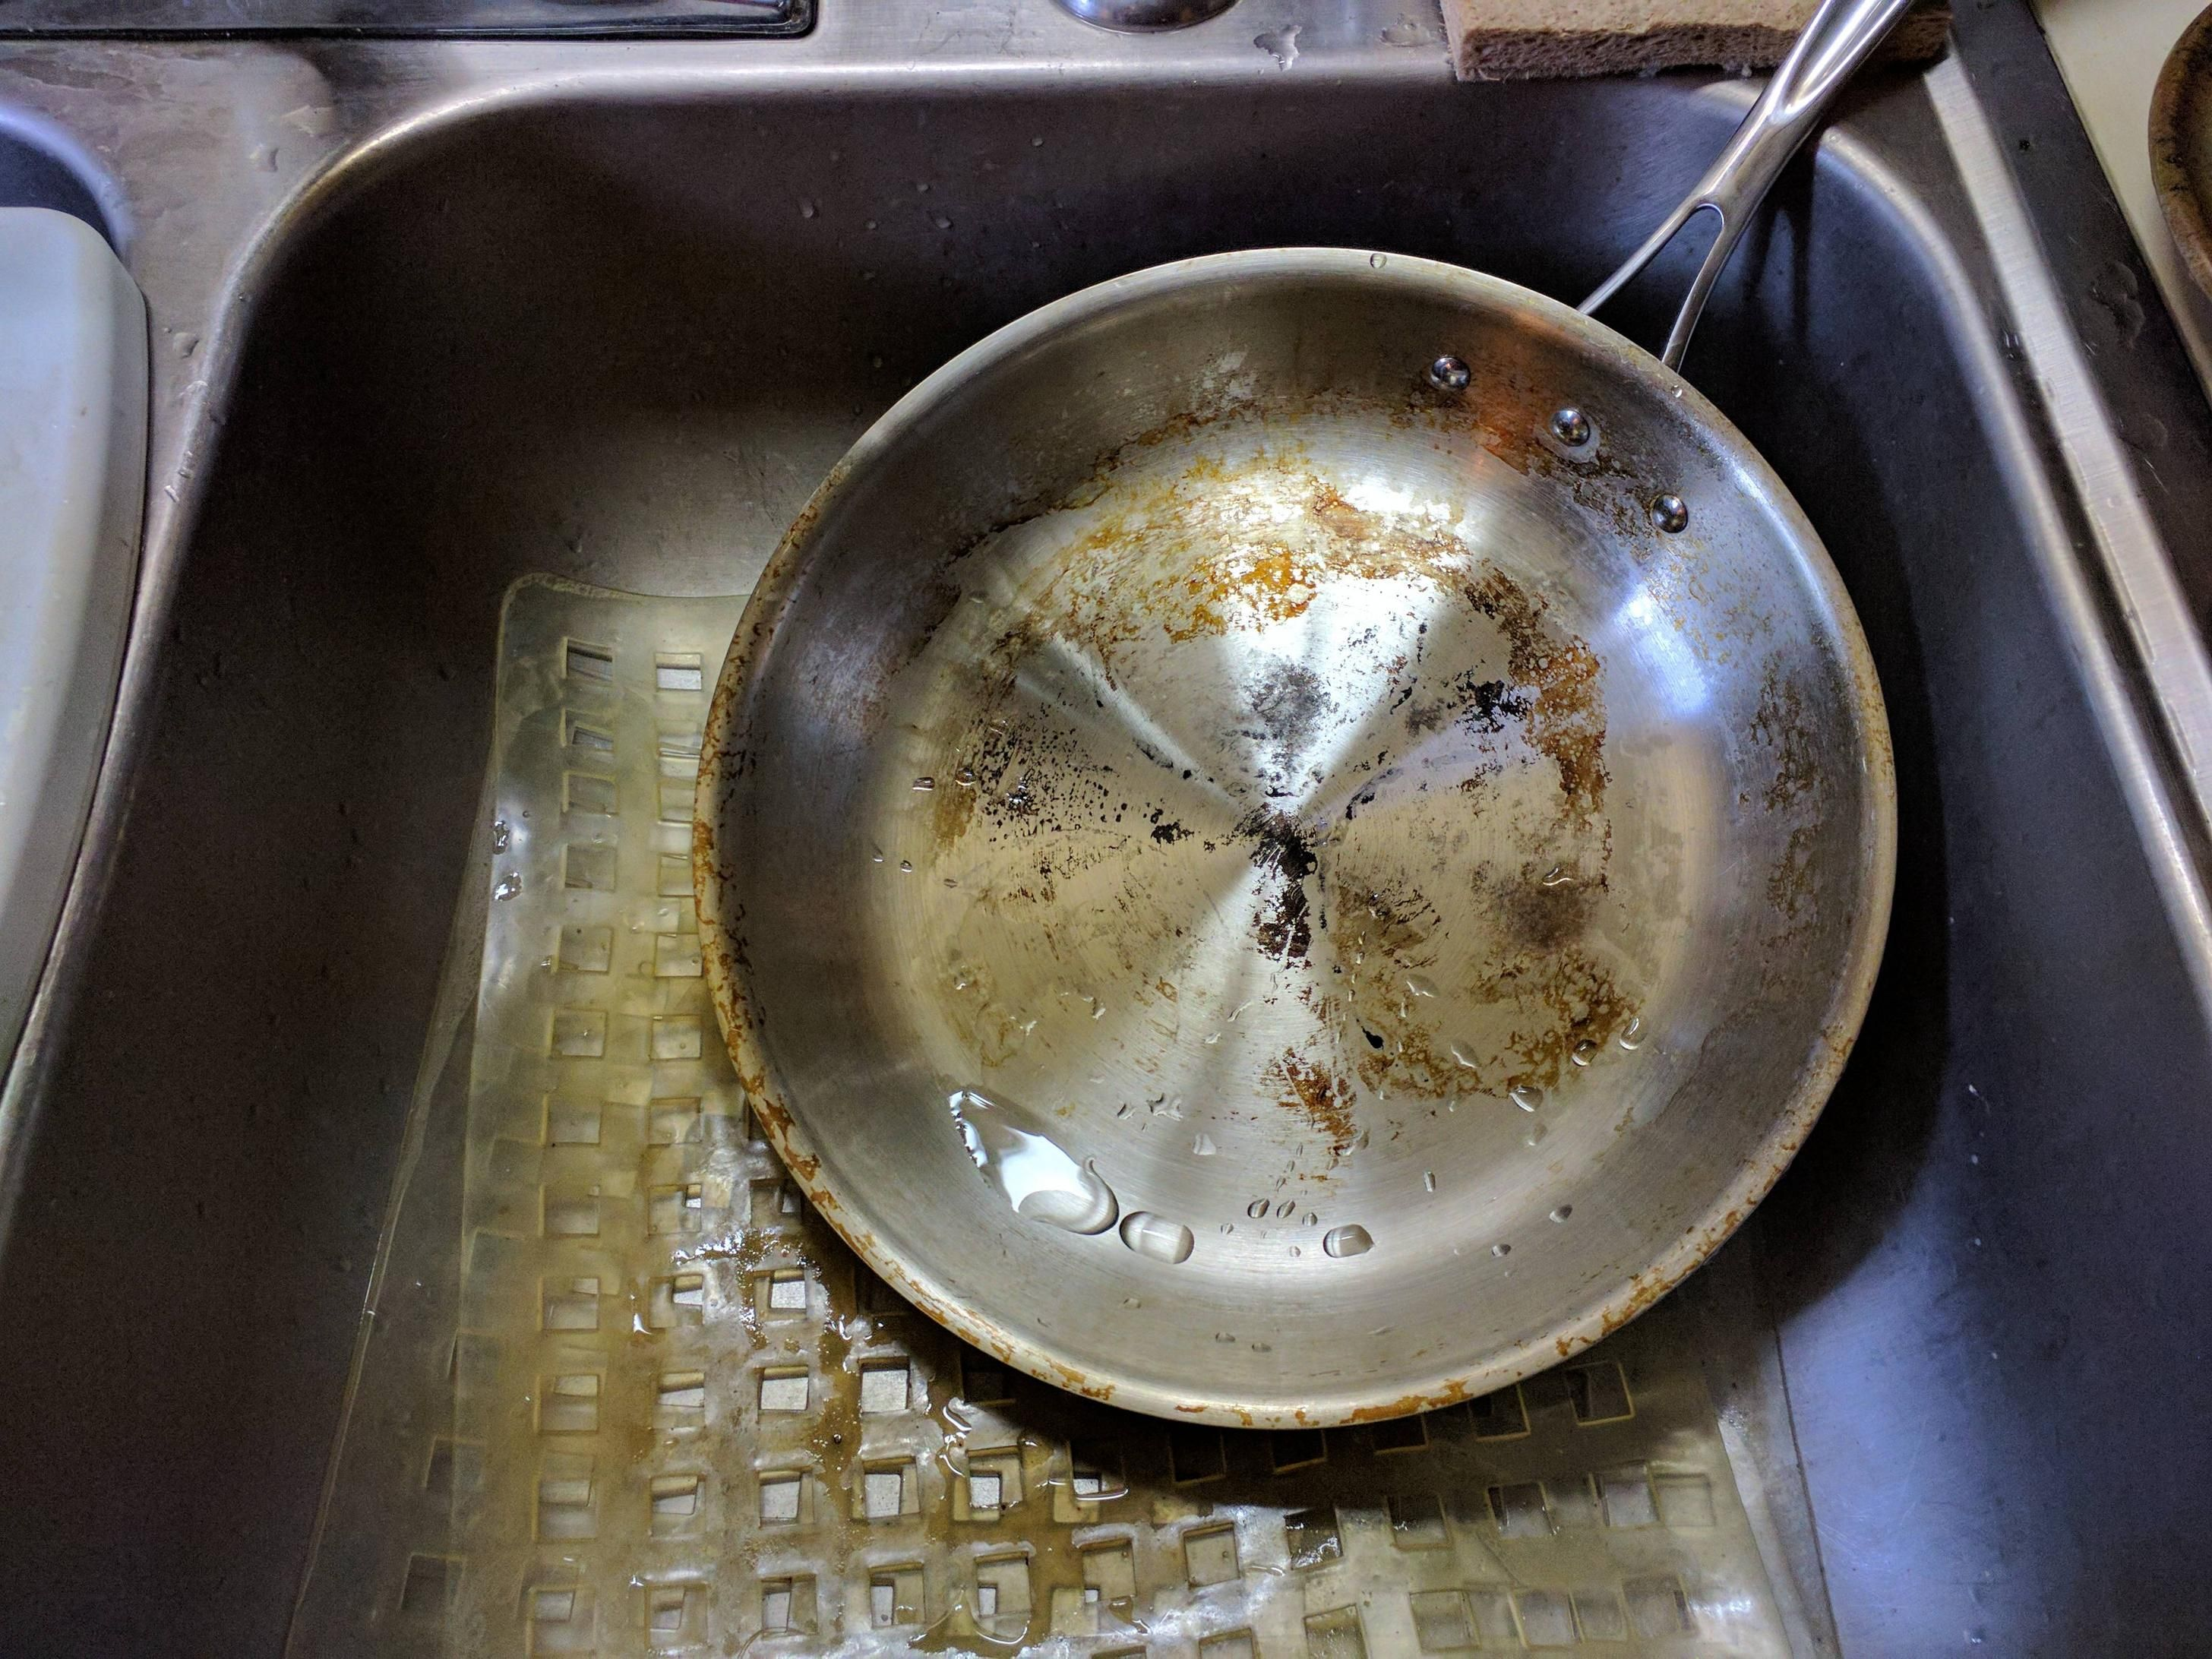 Piss poor cook messing up at home any suggestions on how to clean